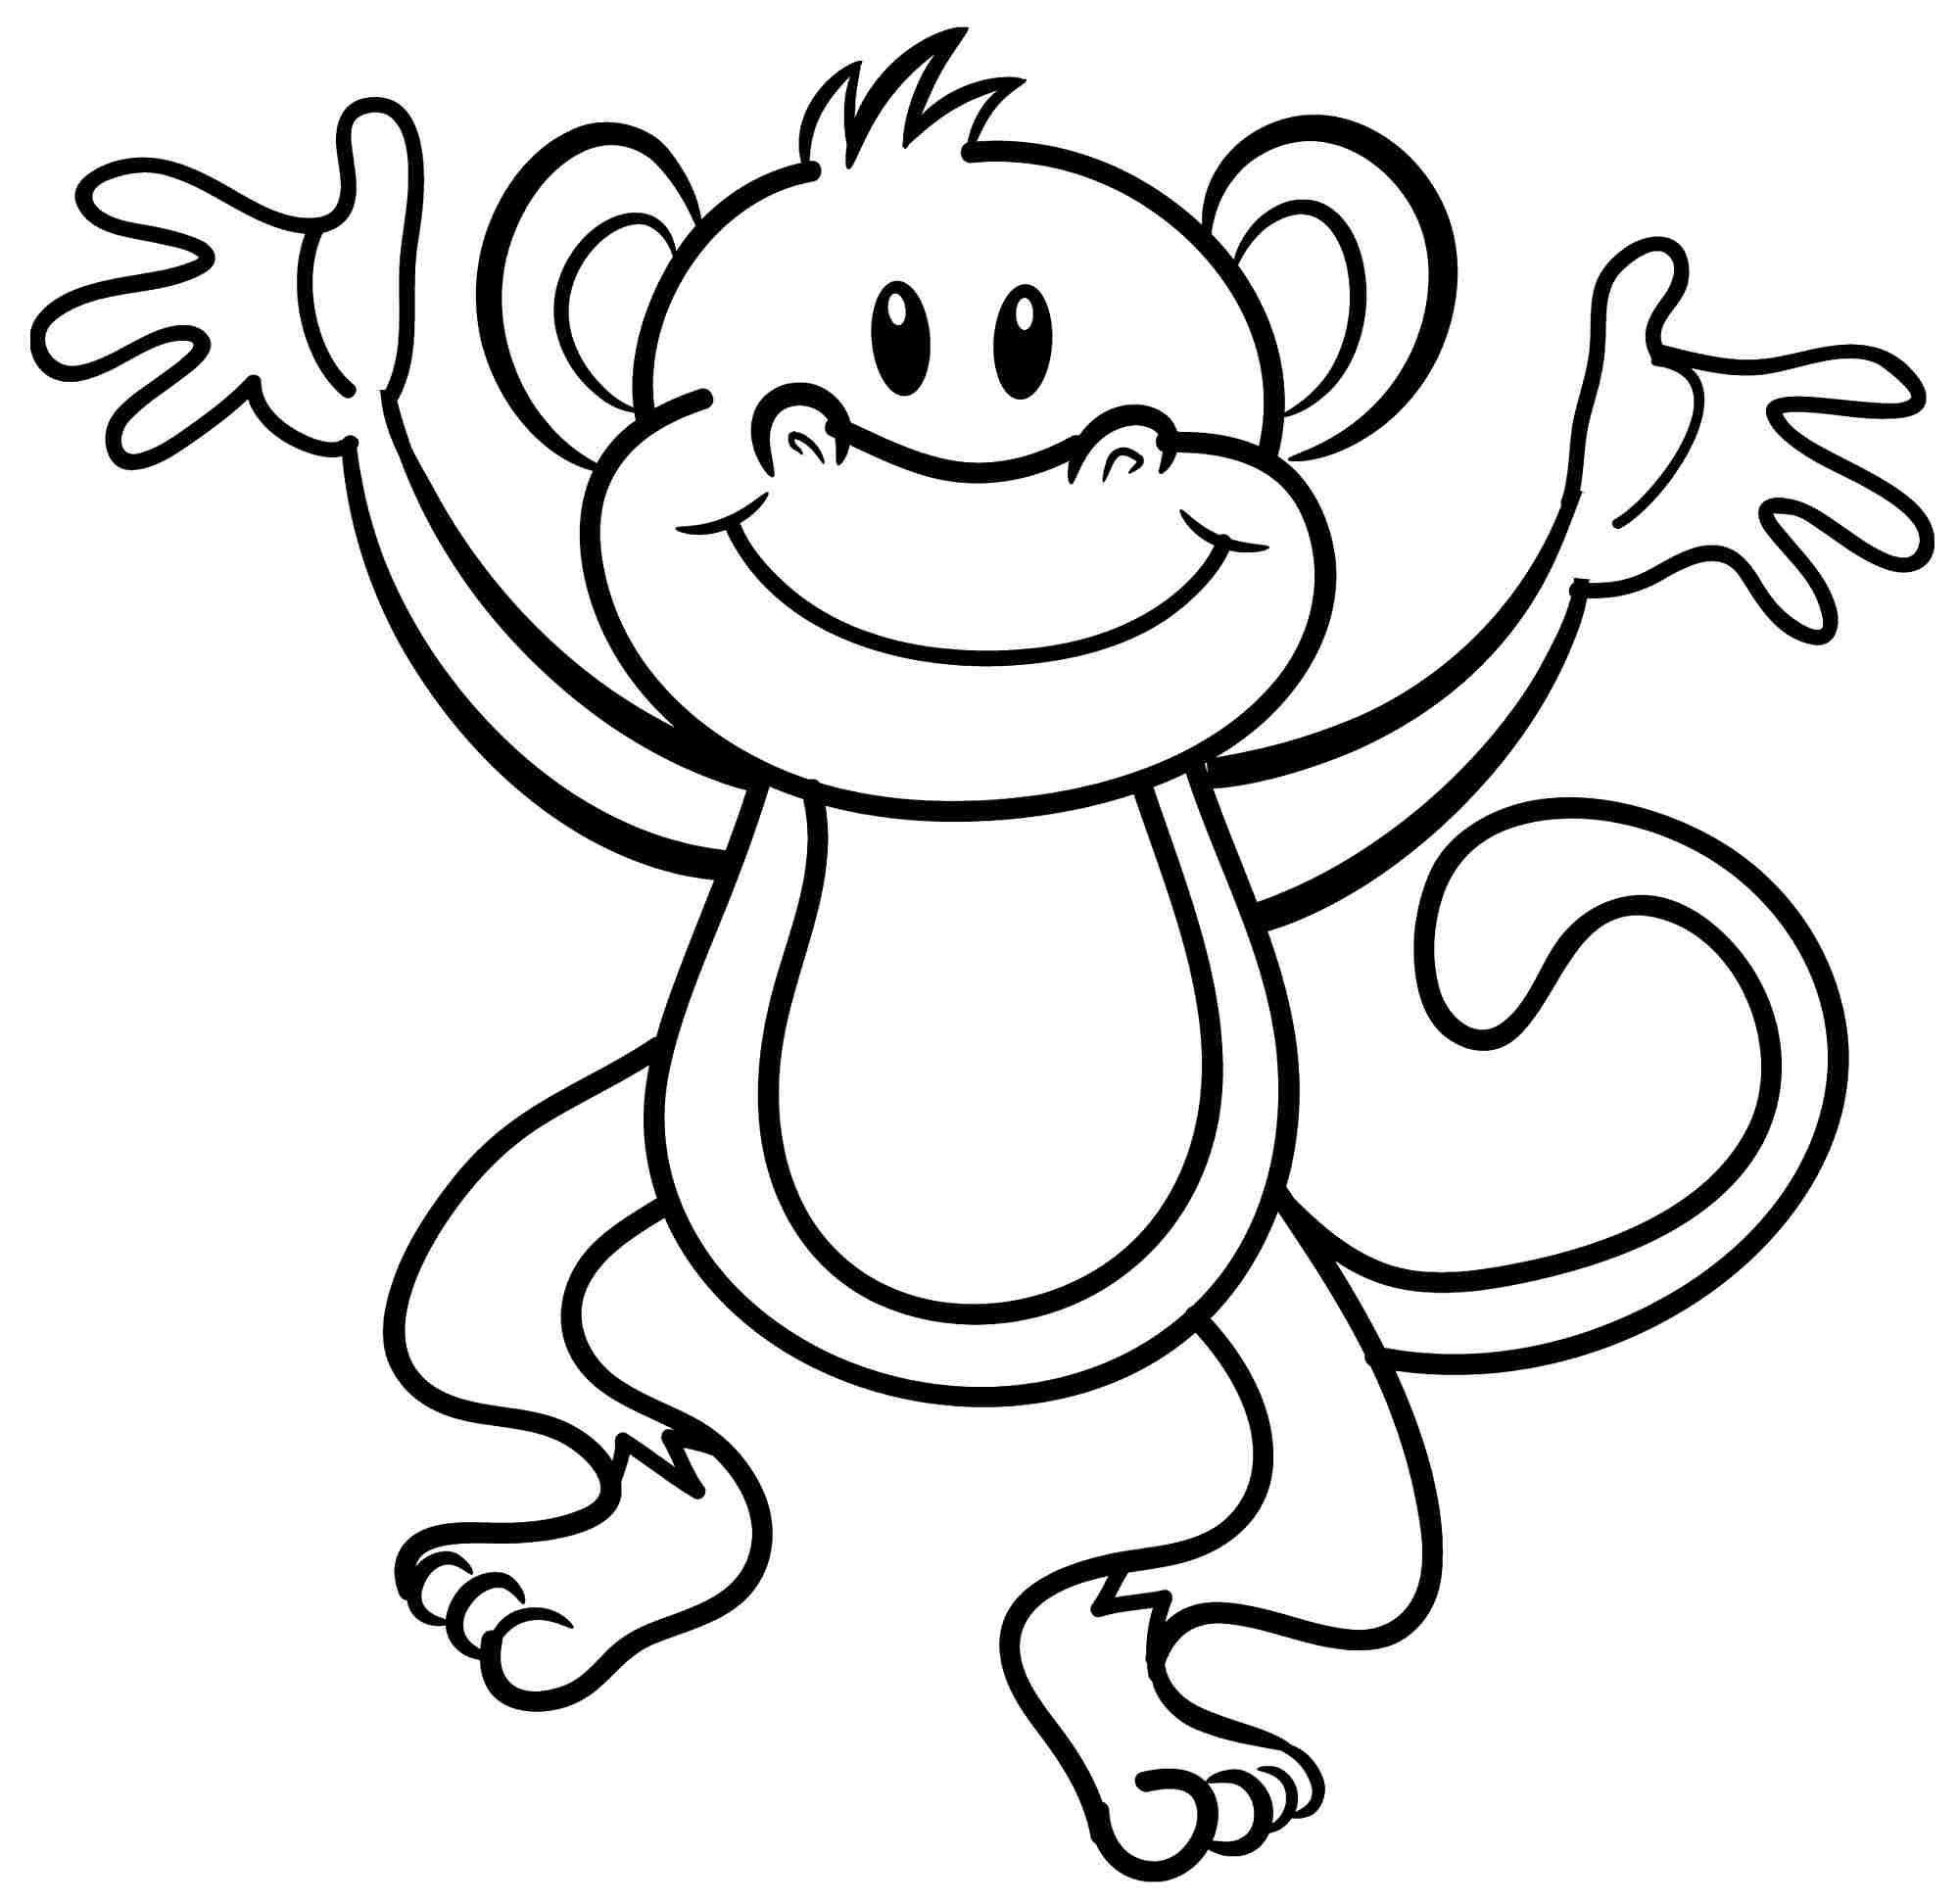 free coloring pages animals image 46 for kids coloring pages of